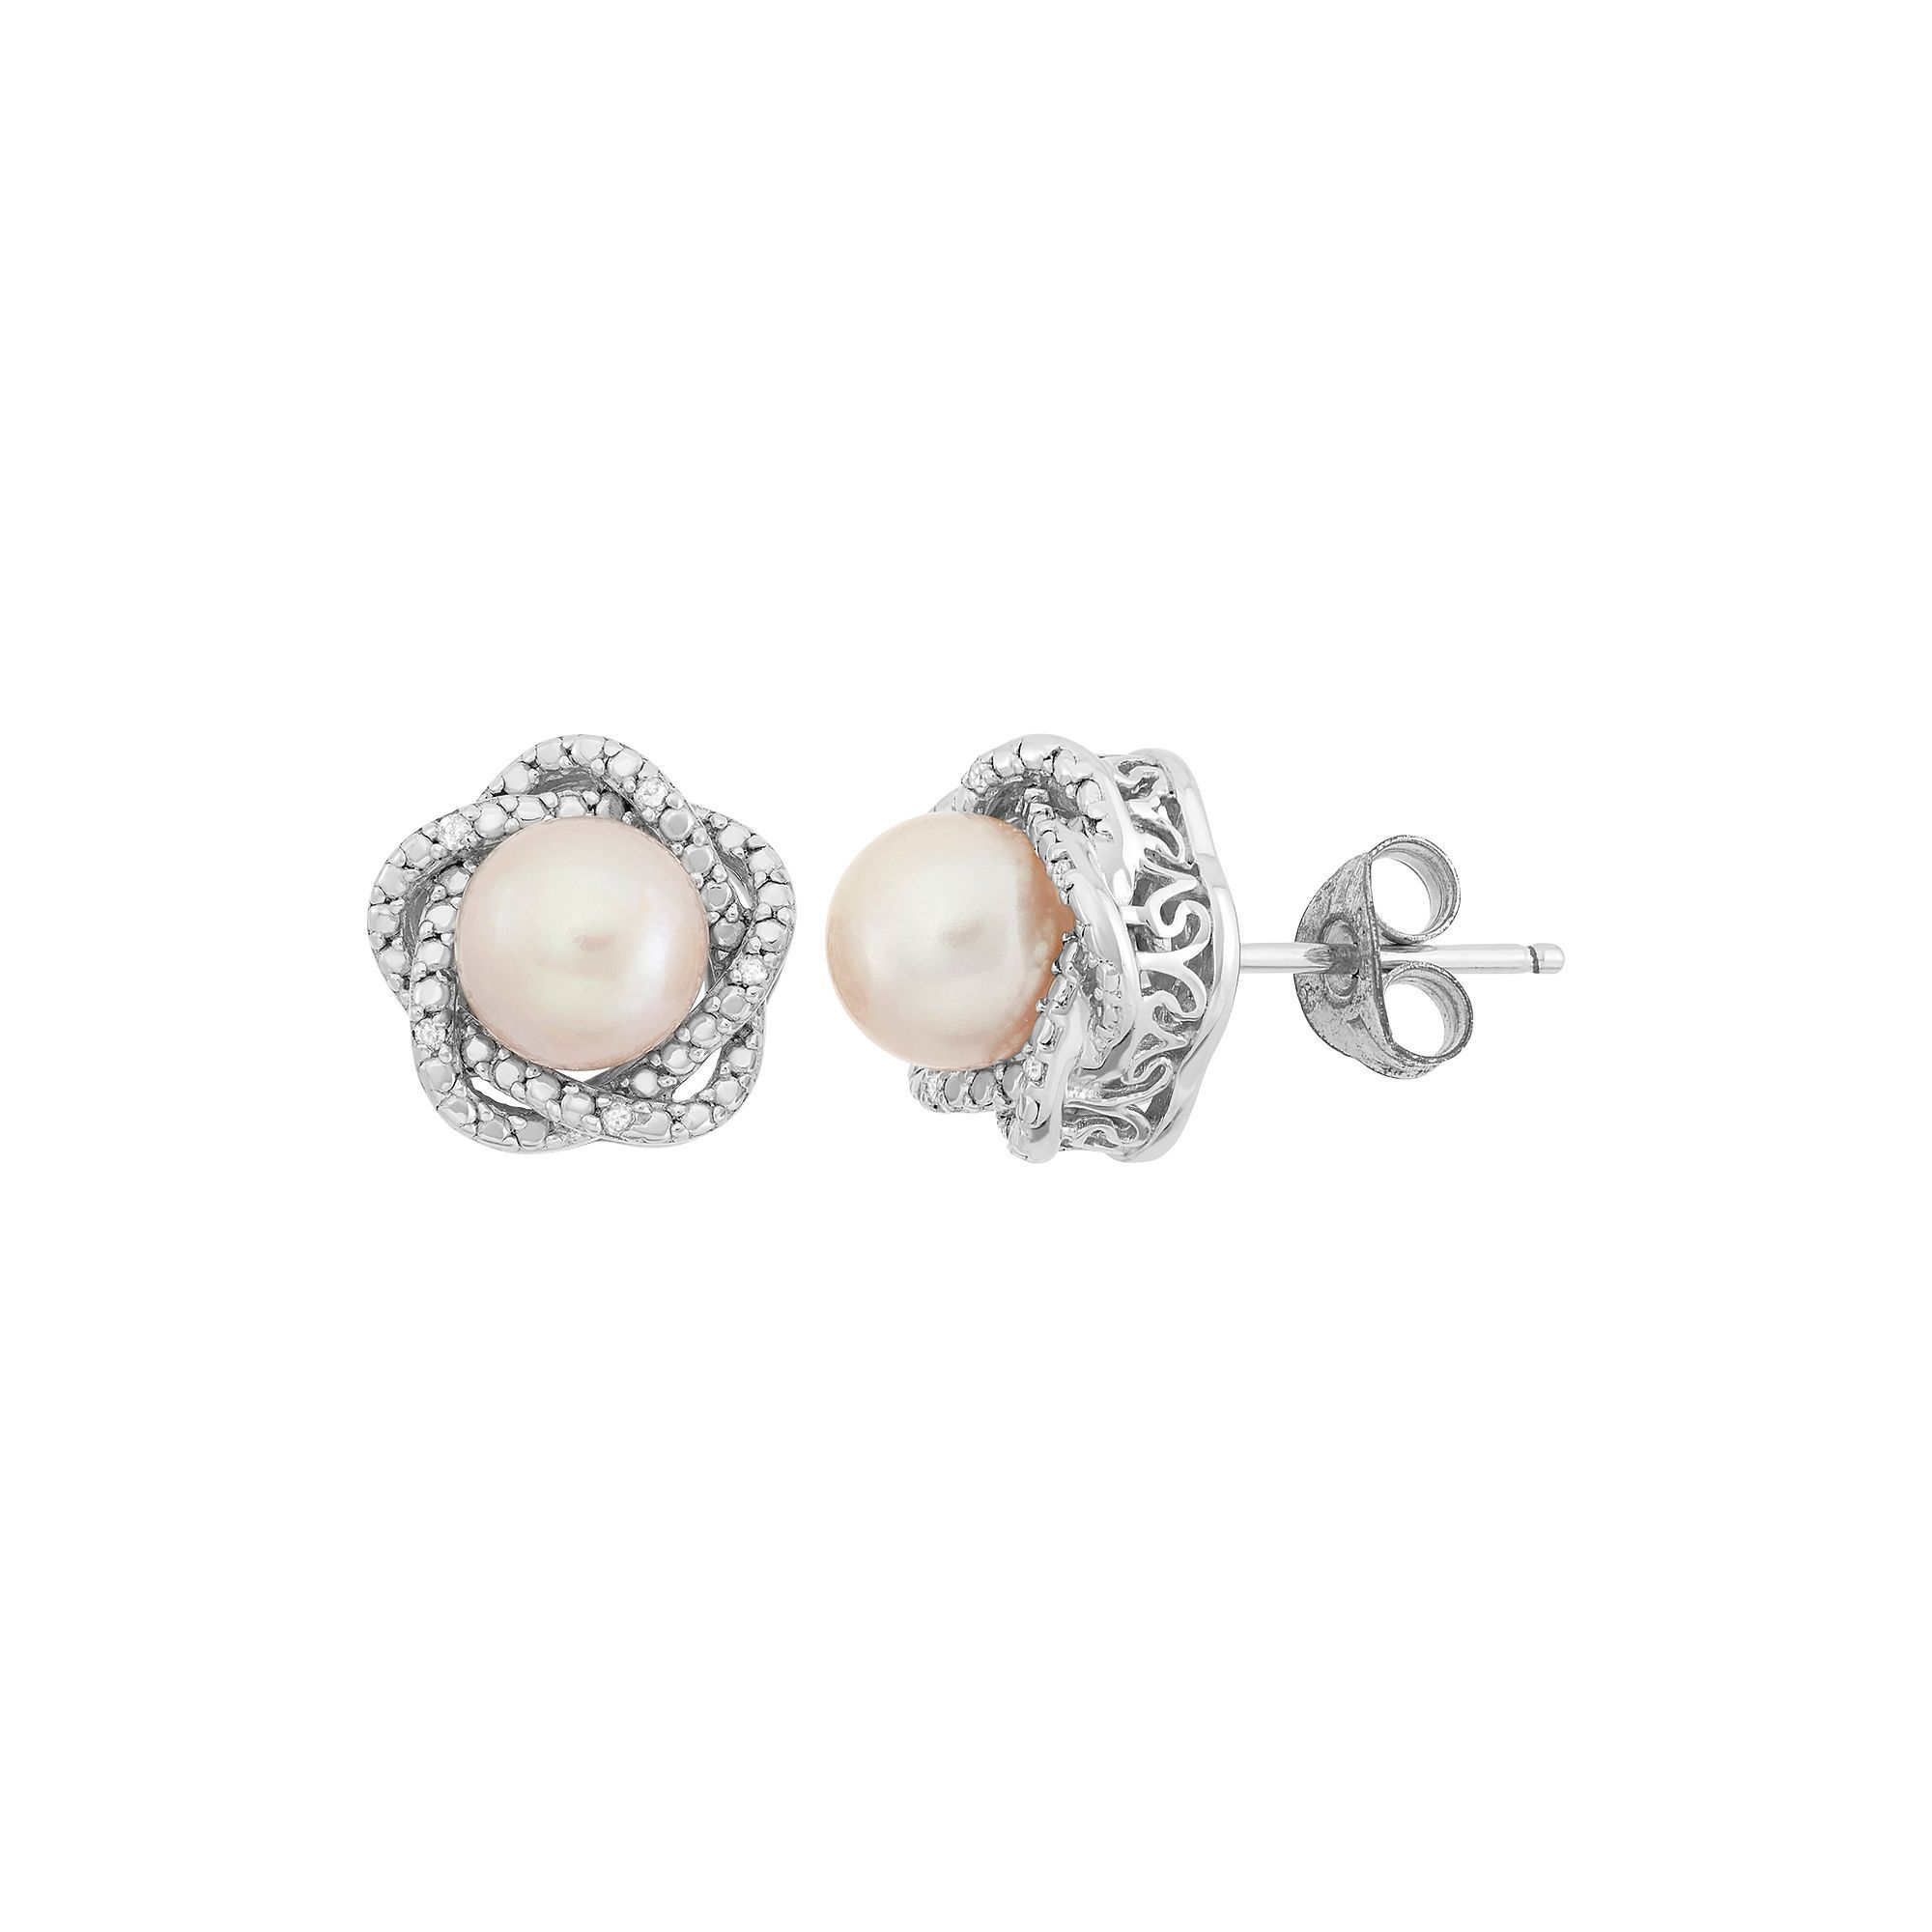 b9ce68774 Simply Vera Vera Wang Dyed Freshwater Cultured Pearl and Diamond Accent  Sterling Silver Stud Earrings,